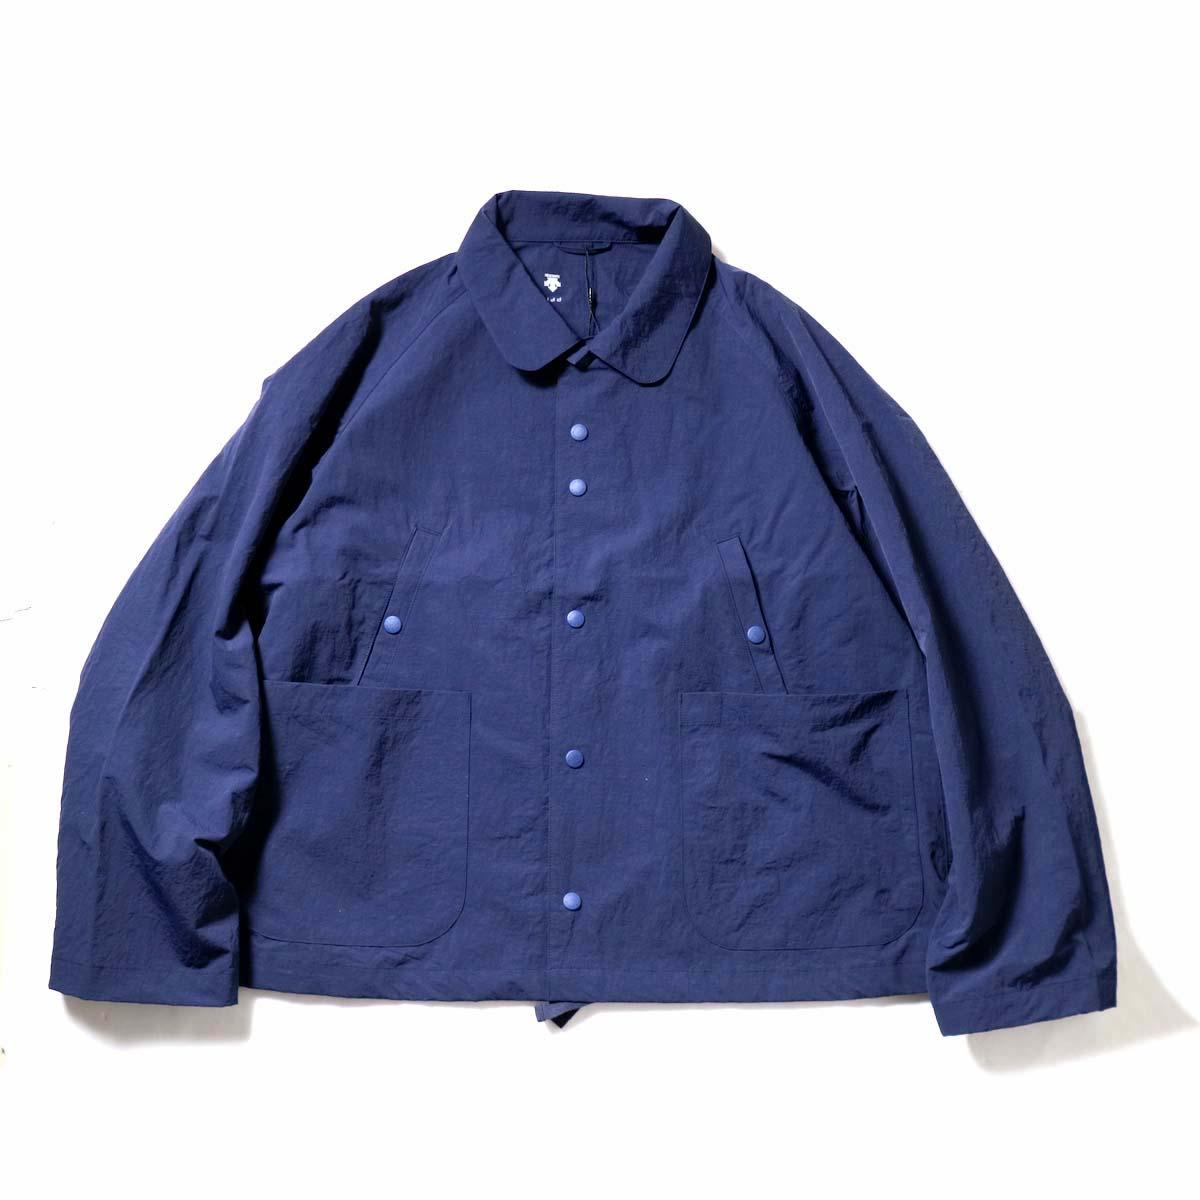 DESCENTE ddd / SWING COACH JACKET (Navy)正面